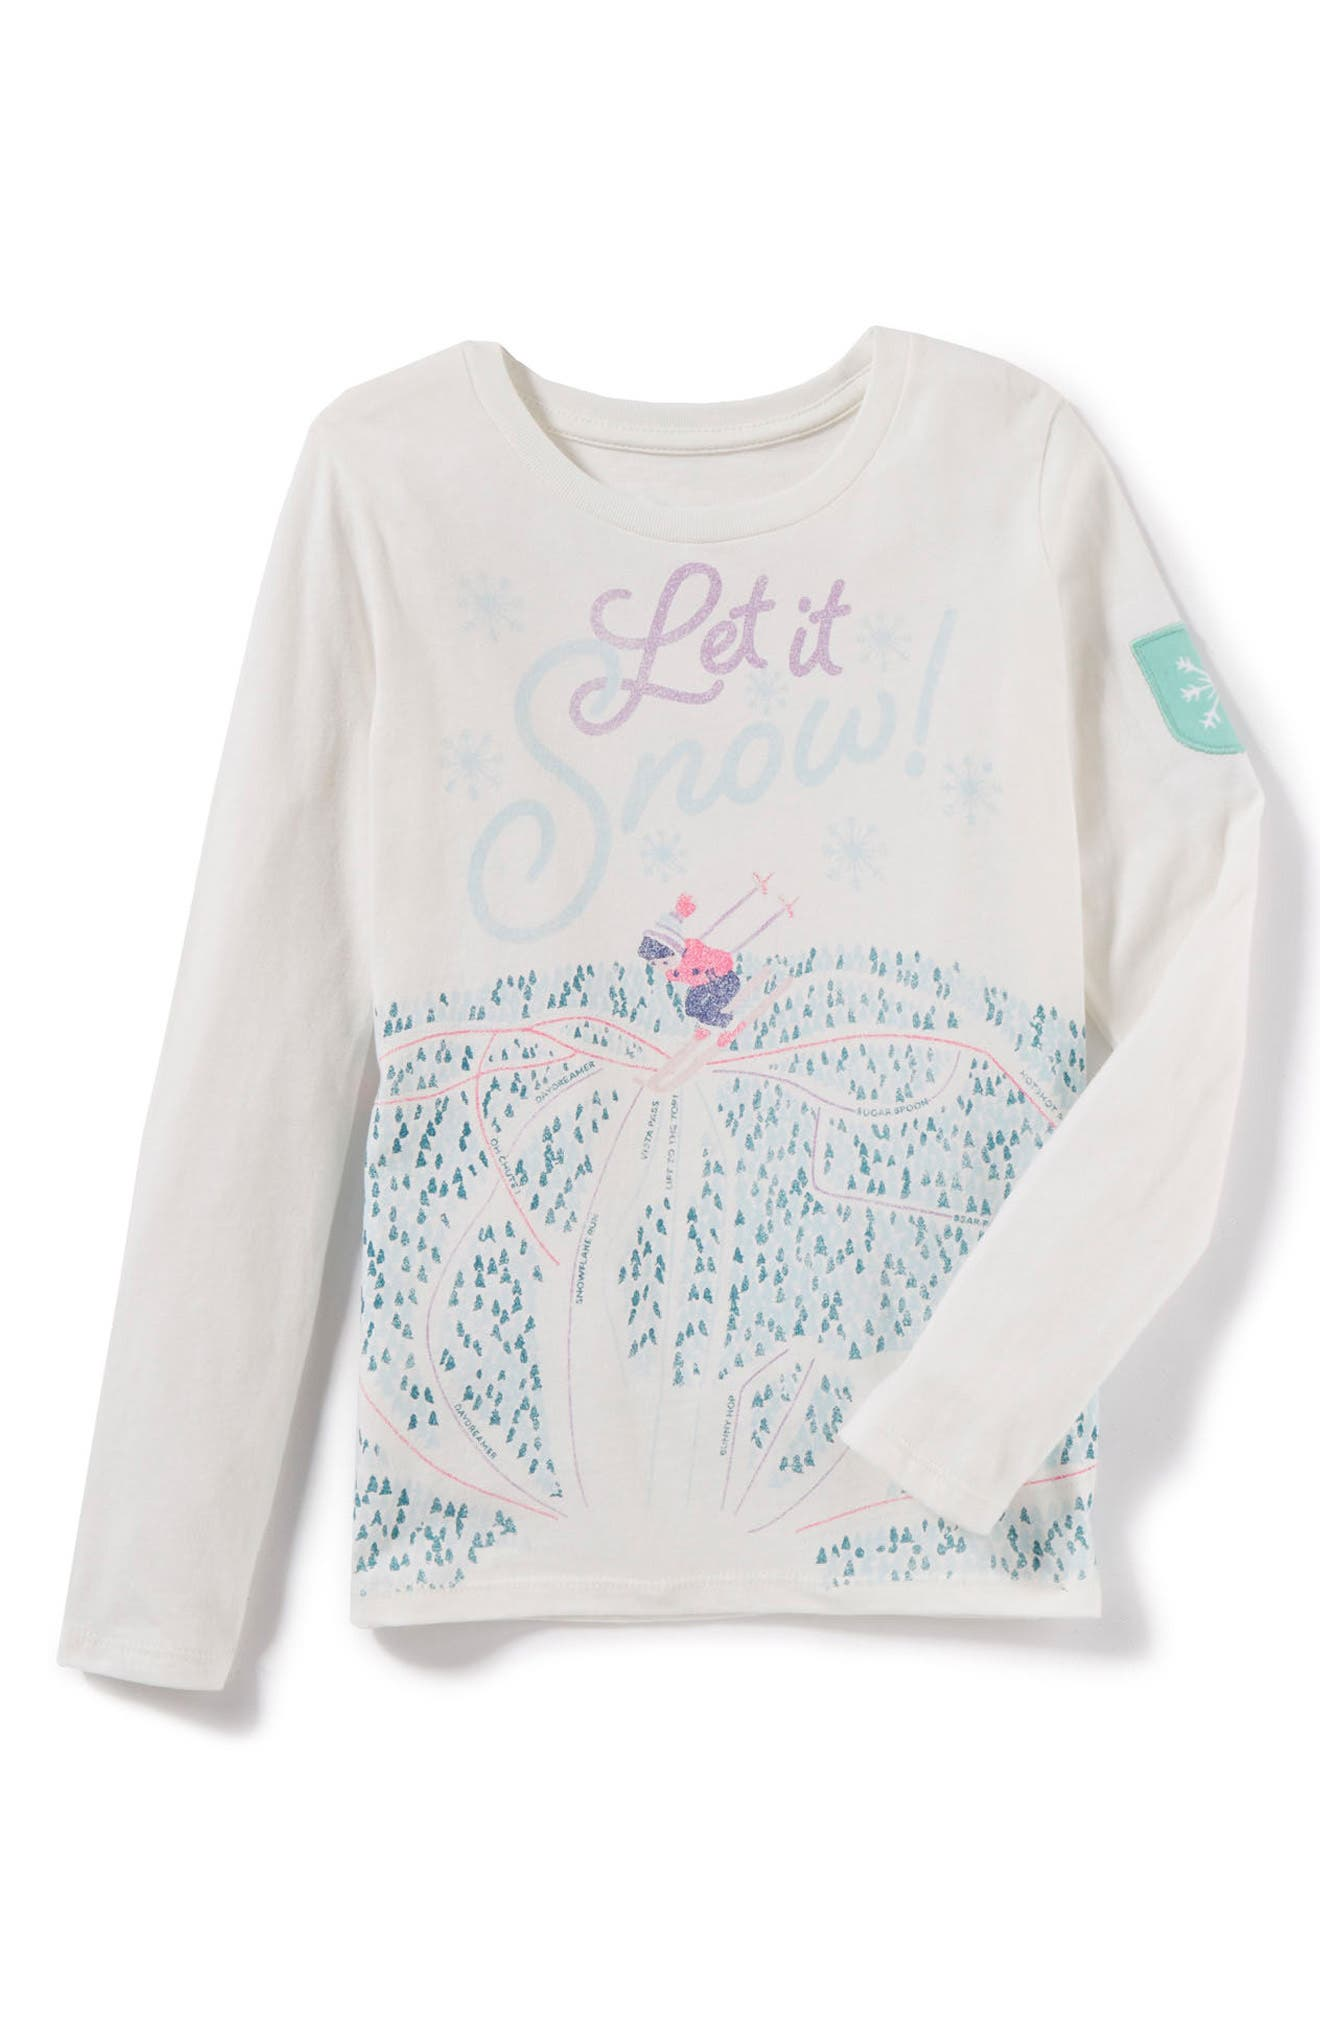 Let it Snow Tee,                         Main,                         color, Ivory